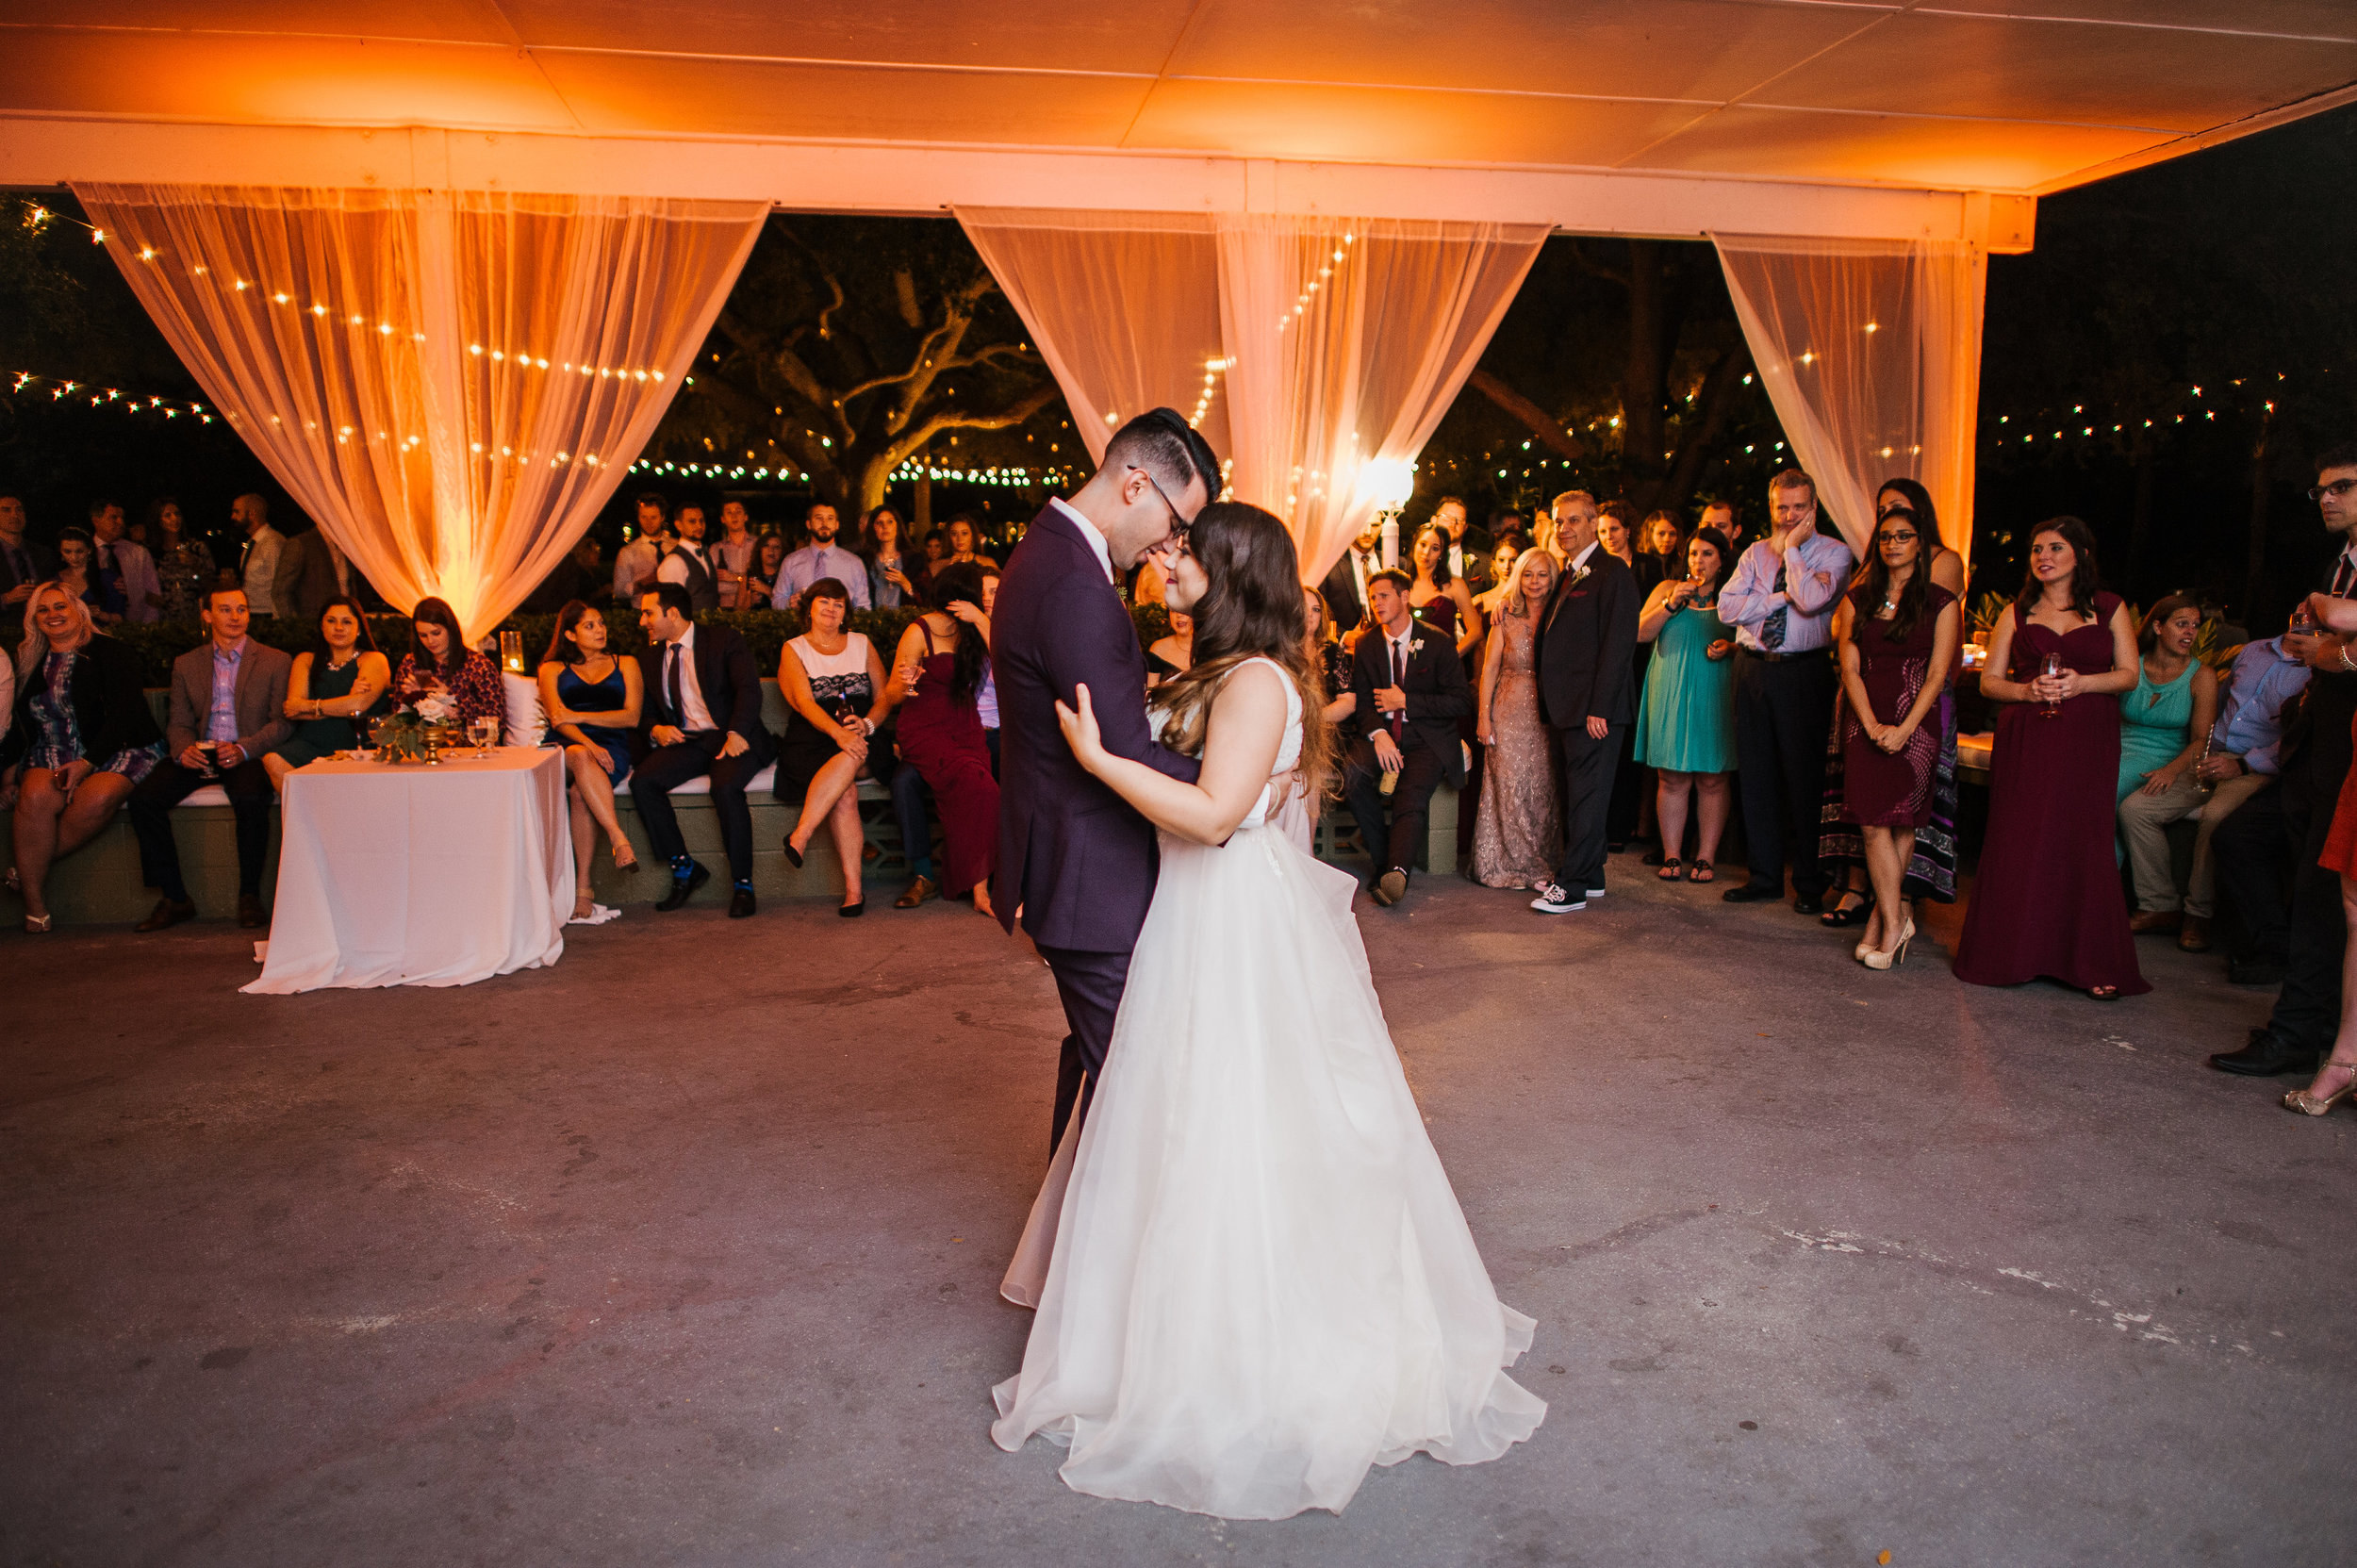 The couple sharing their first dance while surrounded by loved ones, romantic lighting, and chiffon drapery.